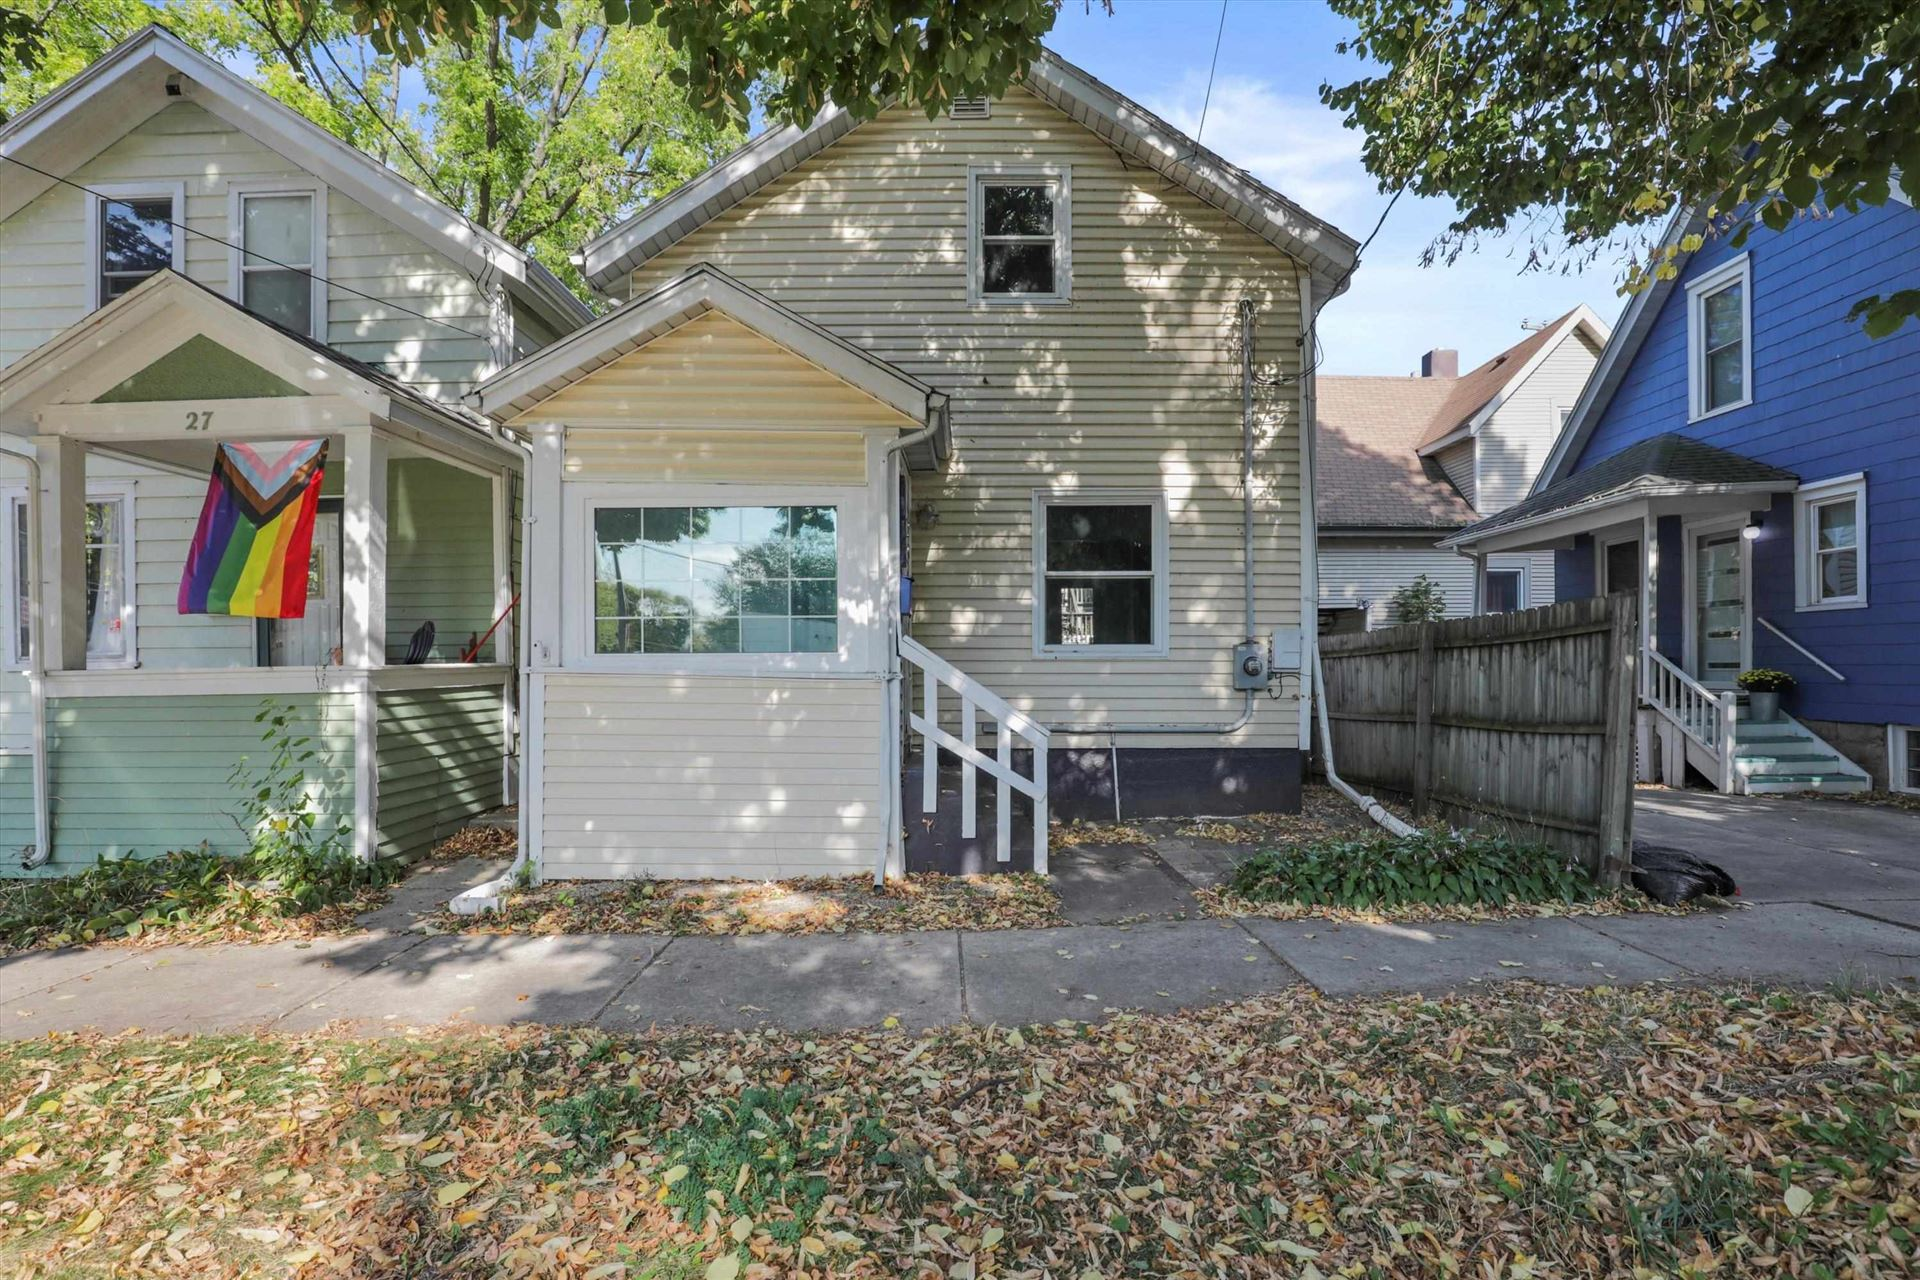 29 S 4th St, Madison, WI 53704 - #: 1921807